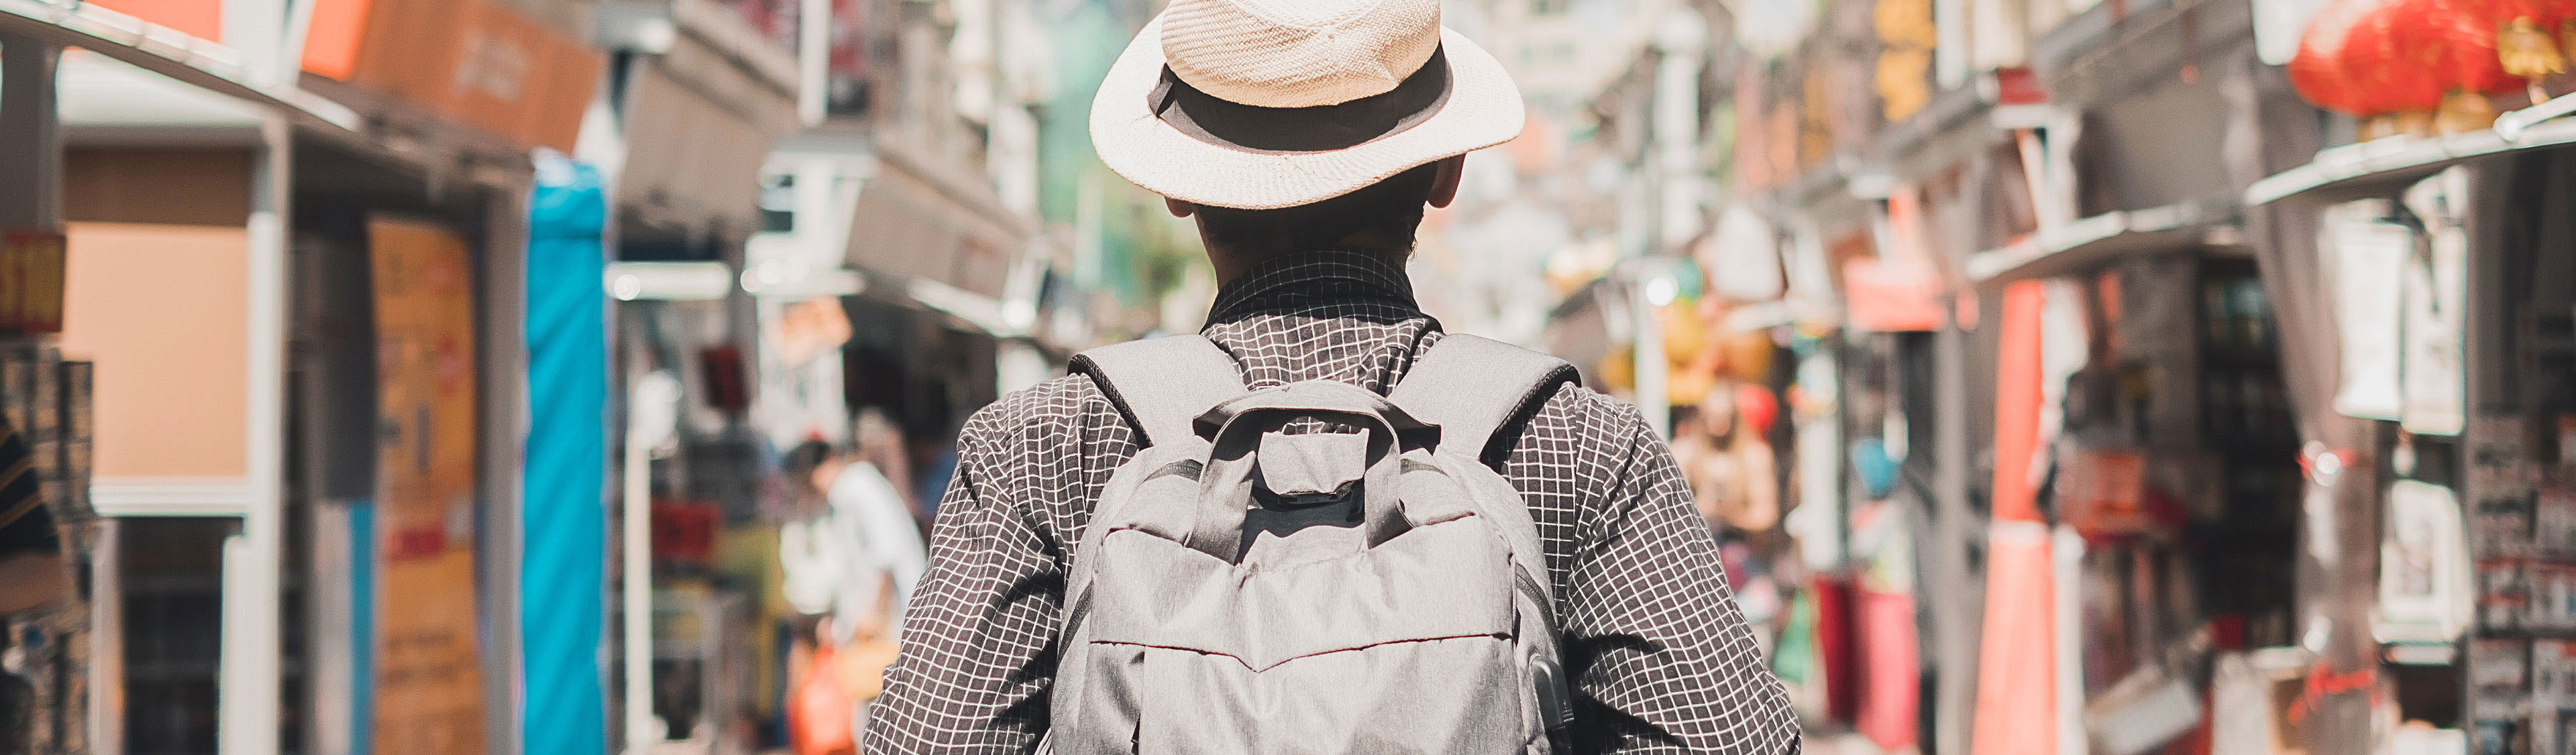 Young man traveling with backpack and hat